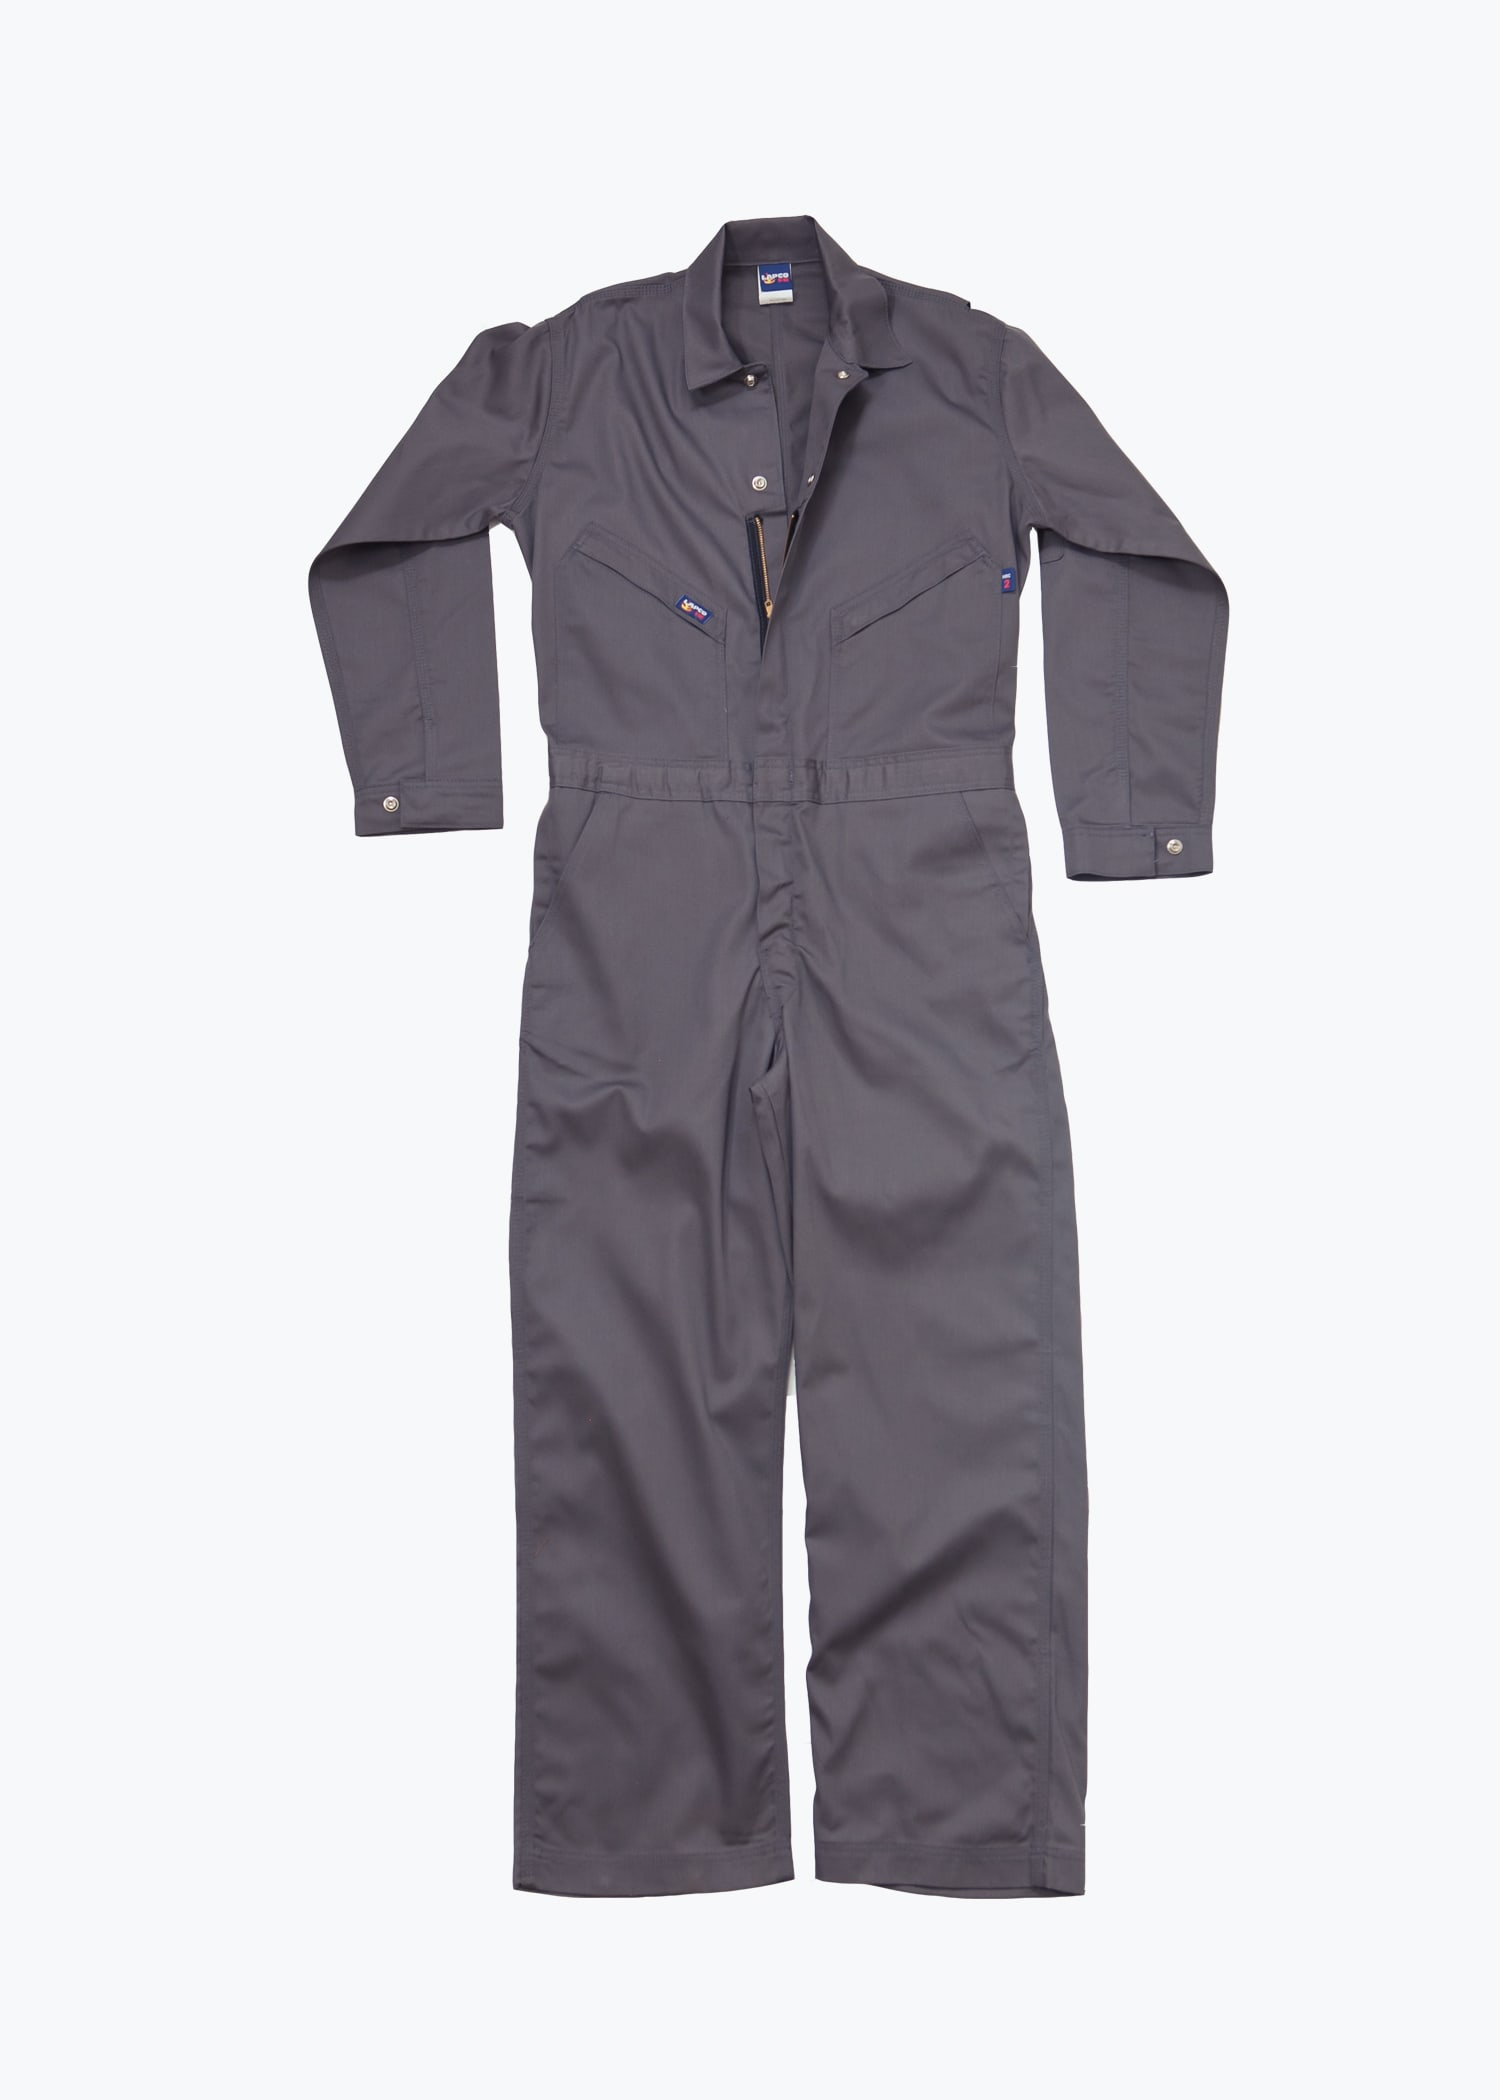 Lapco 7oz Flame Resistant Gray Deluxe Contractor Coverall